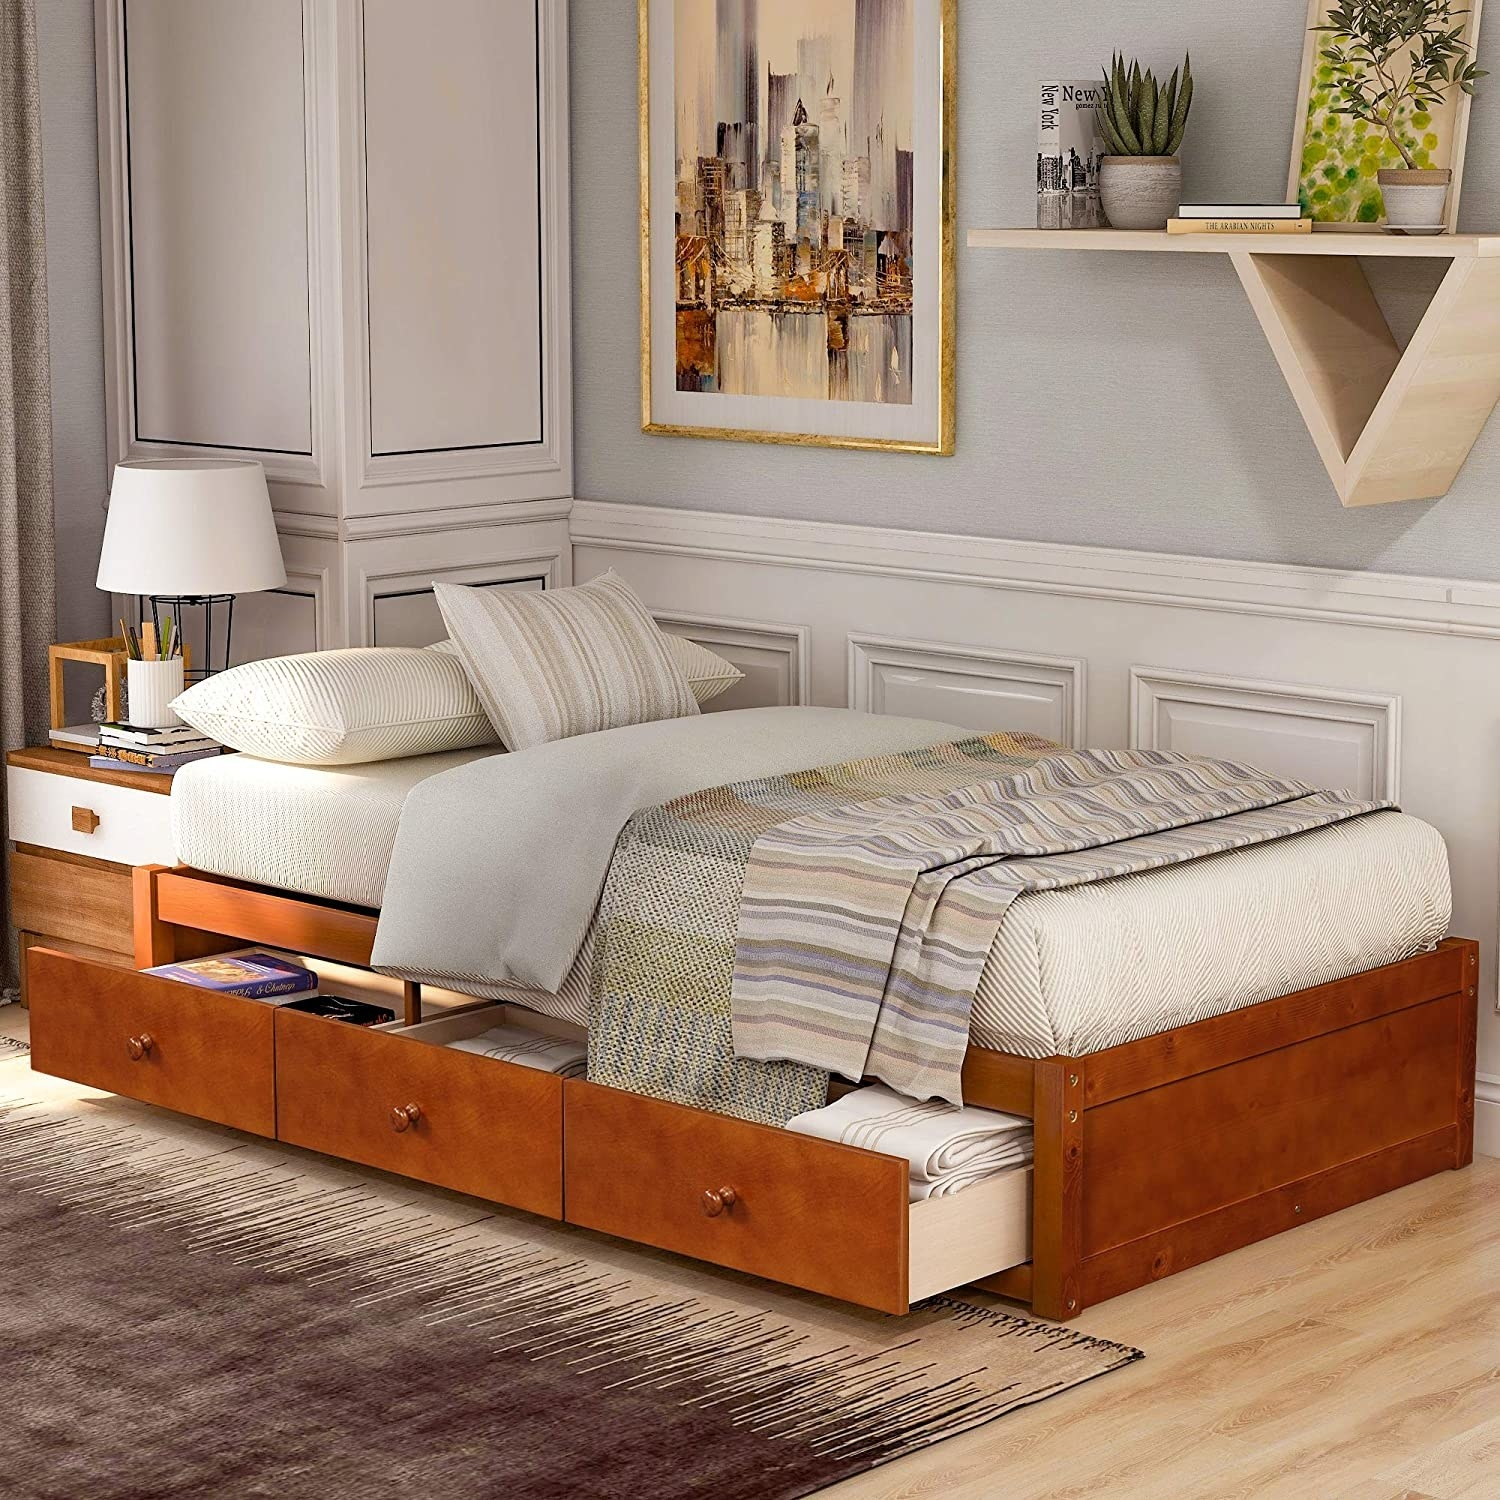 a platform bed made of wood, with round handles in the center of each shelf. The shelves are on the right side of the bed